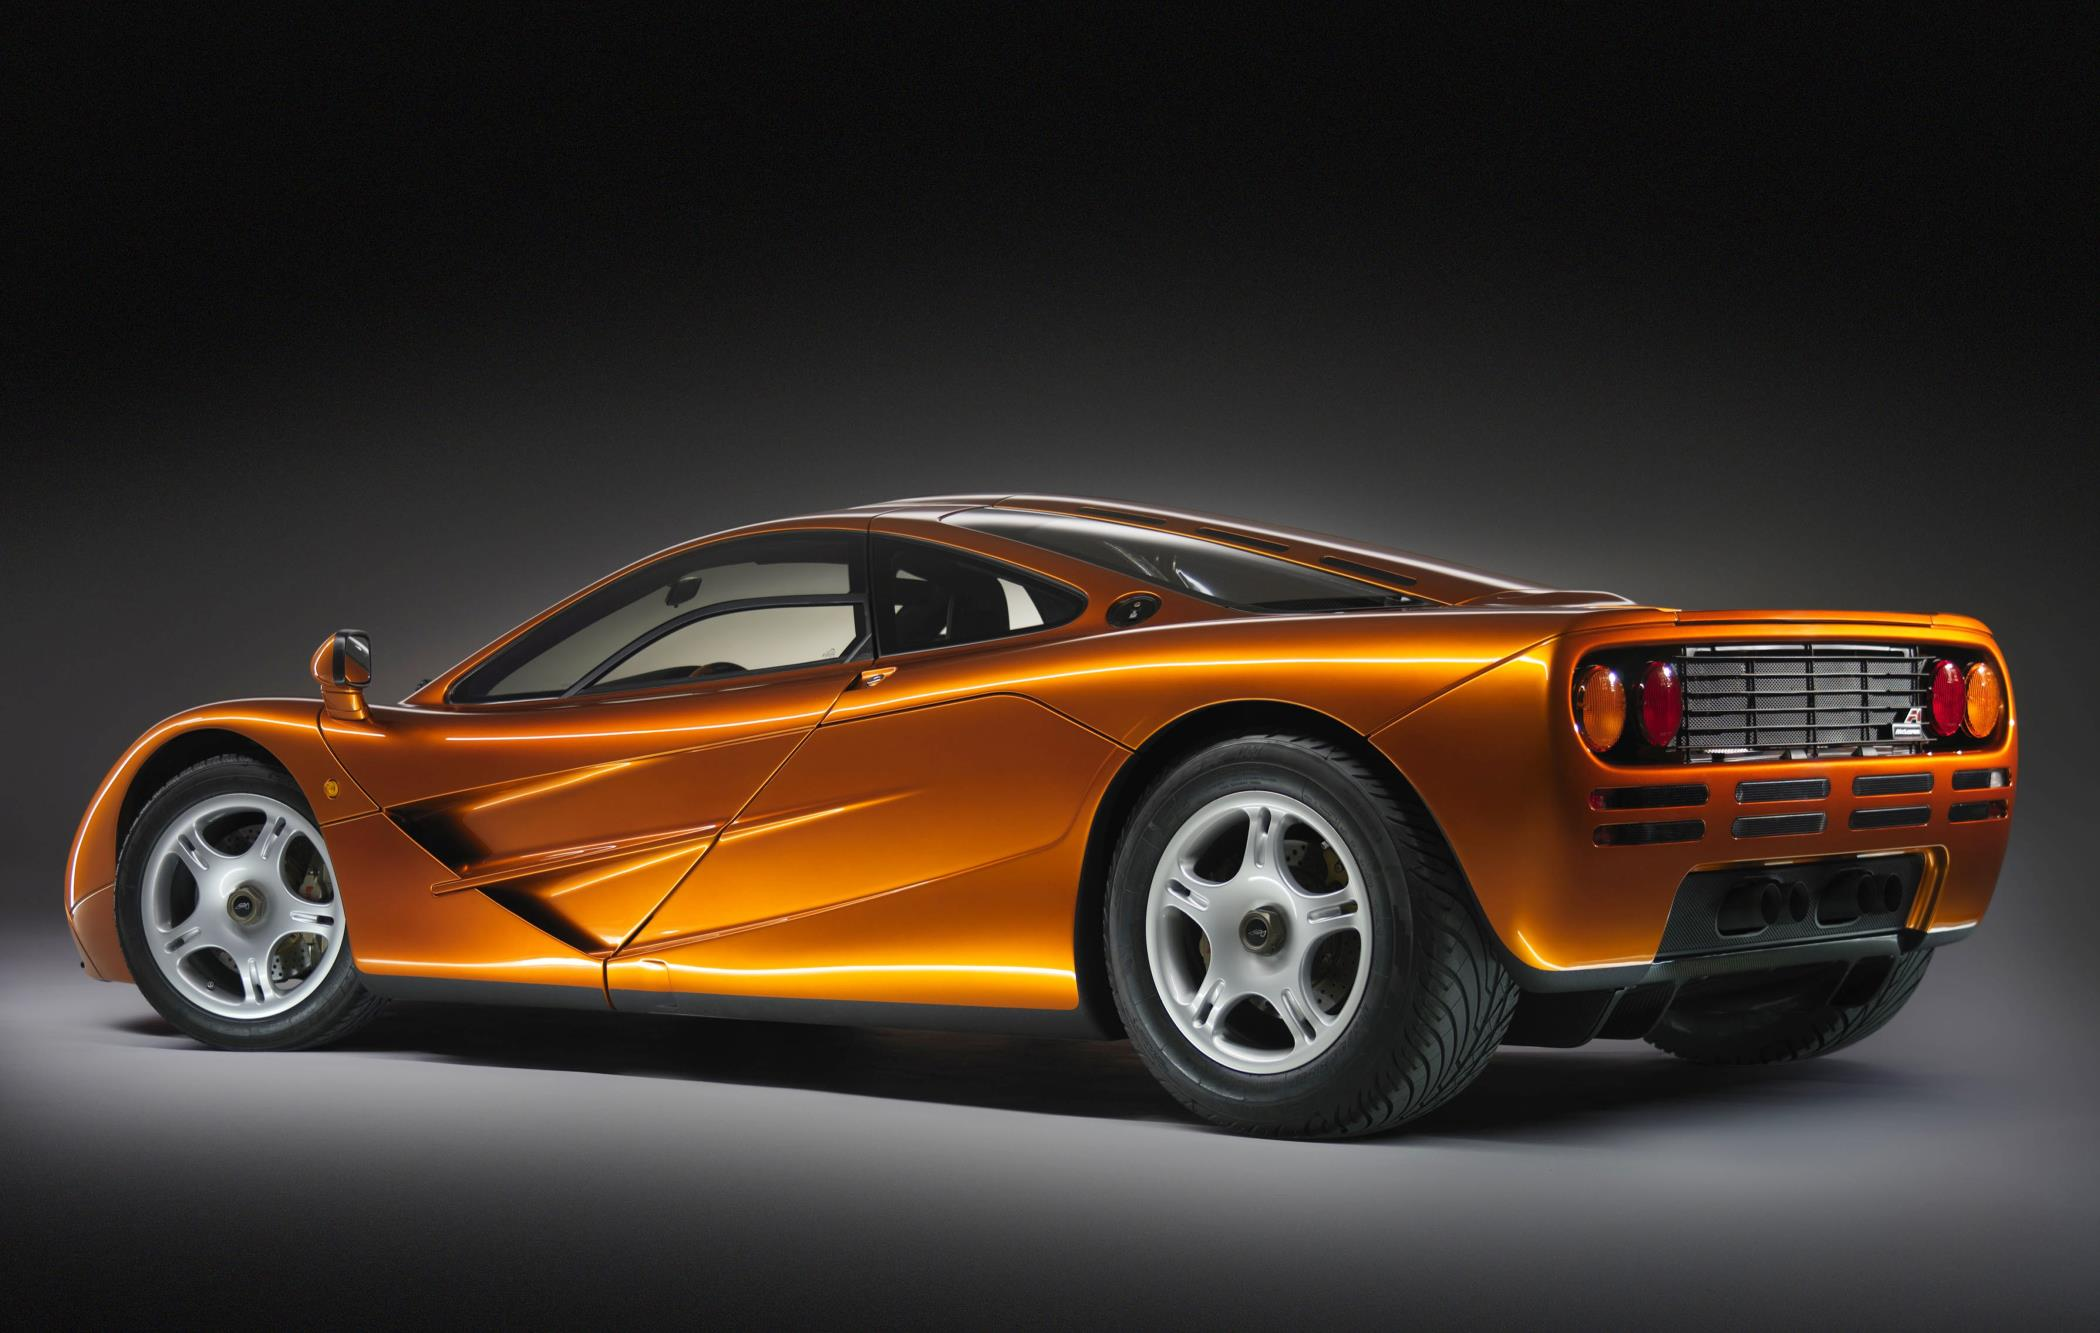 McLaren F1 rear three-quarter